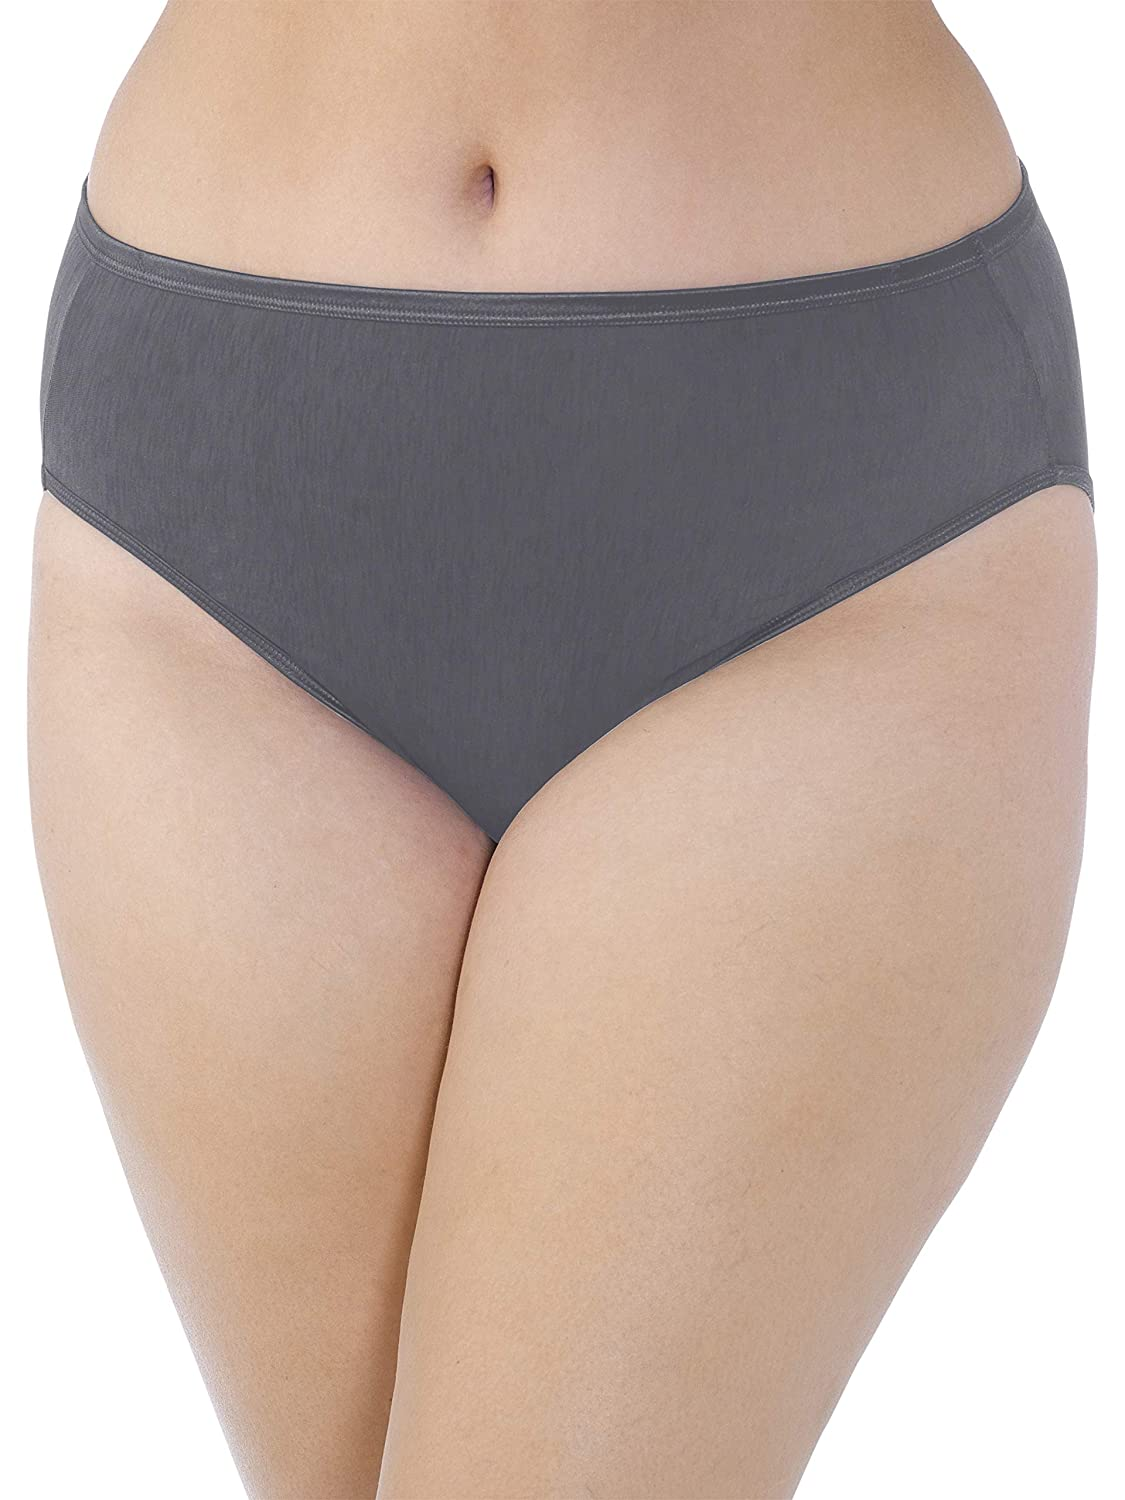 Vanity Fair Womens Plus-Size Illumination Hi Cut Plus Size Panty 13810